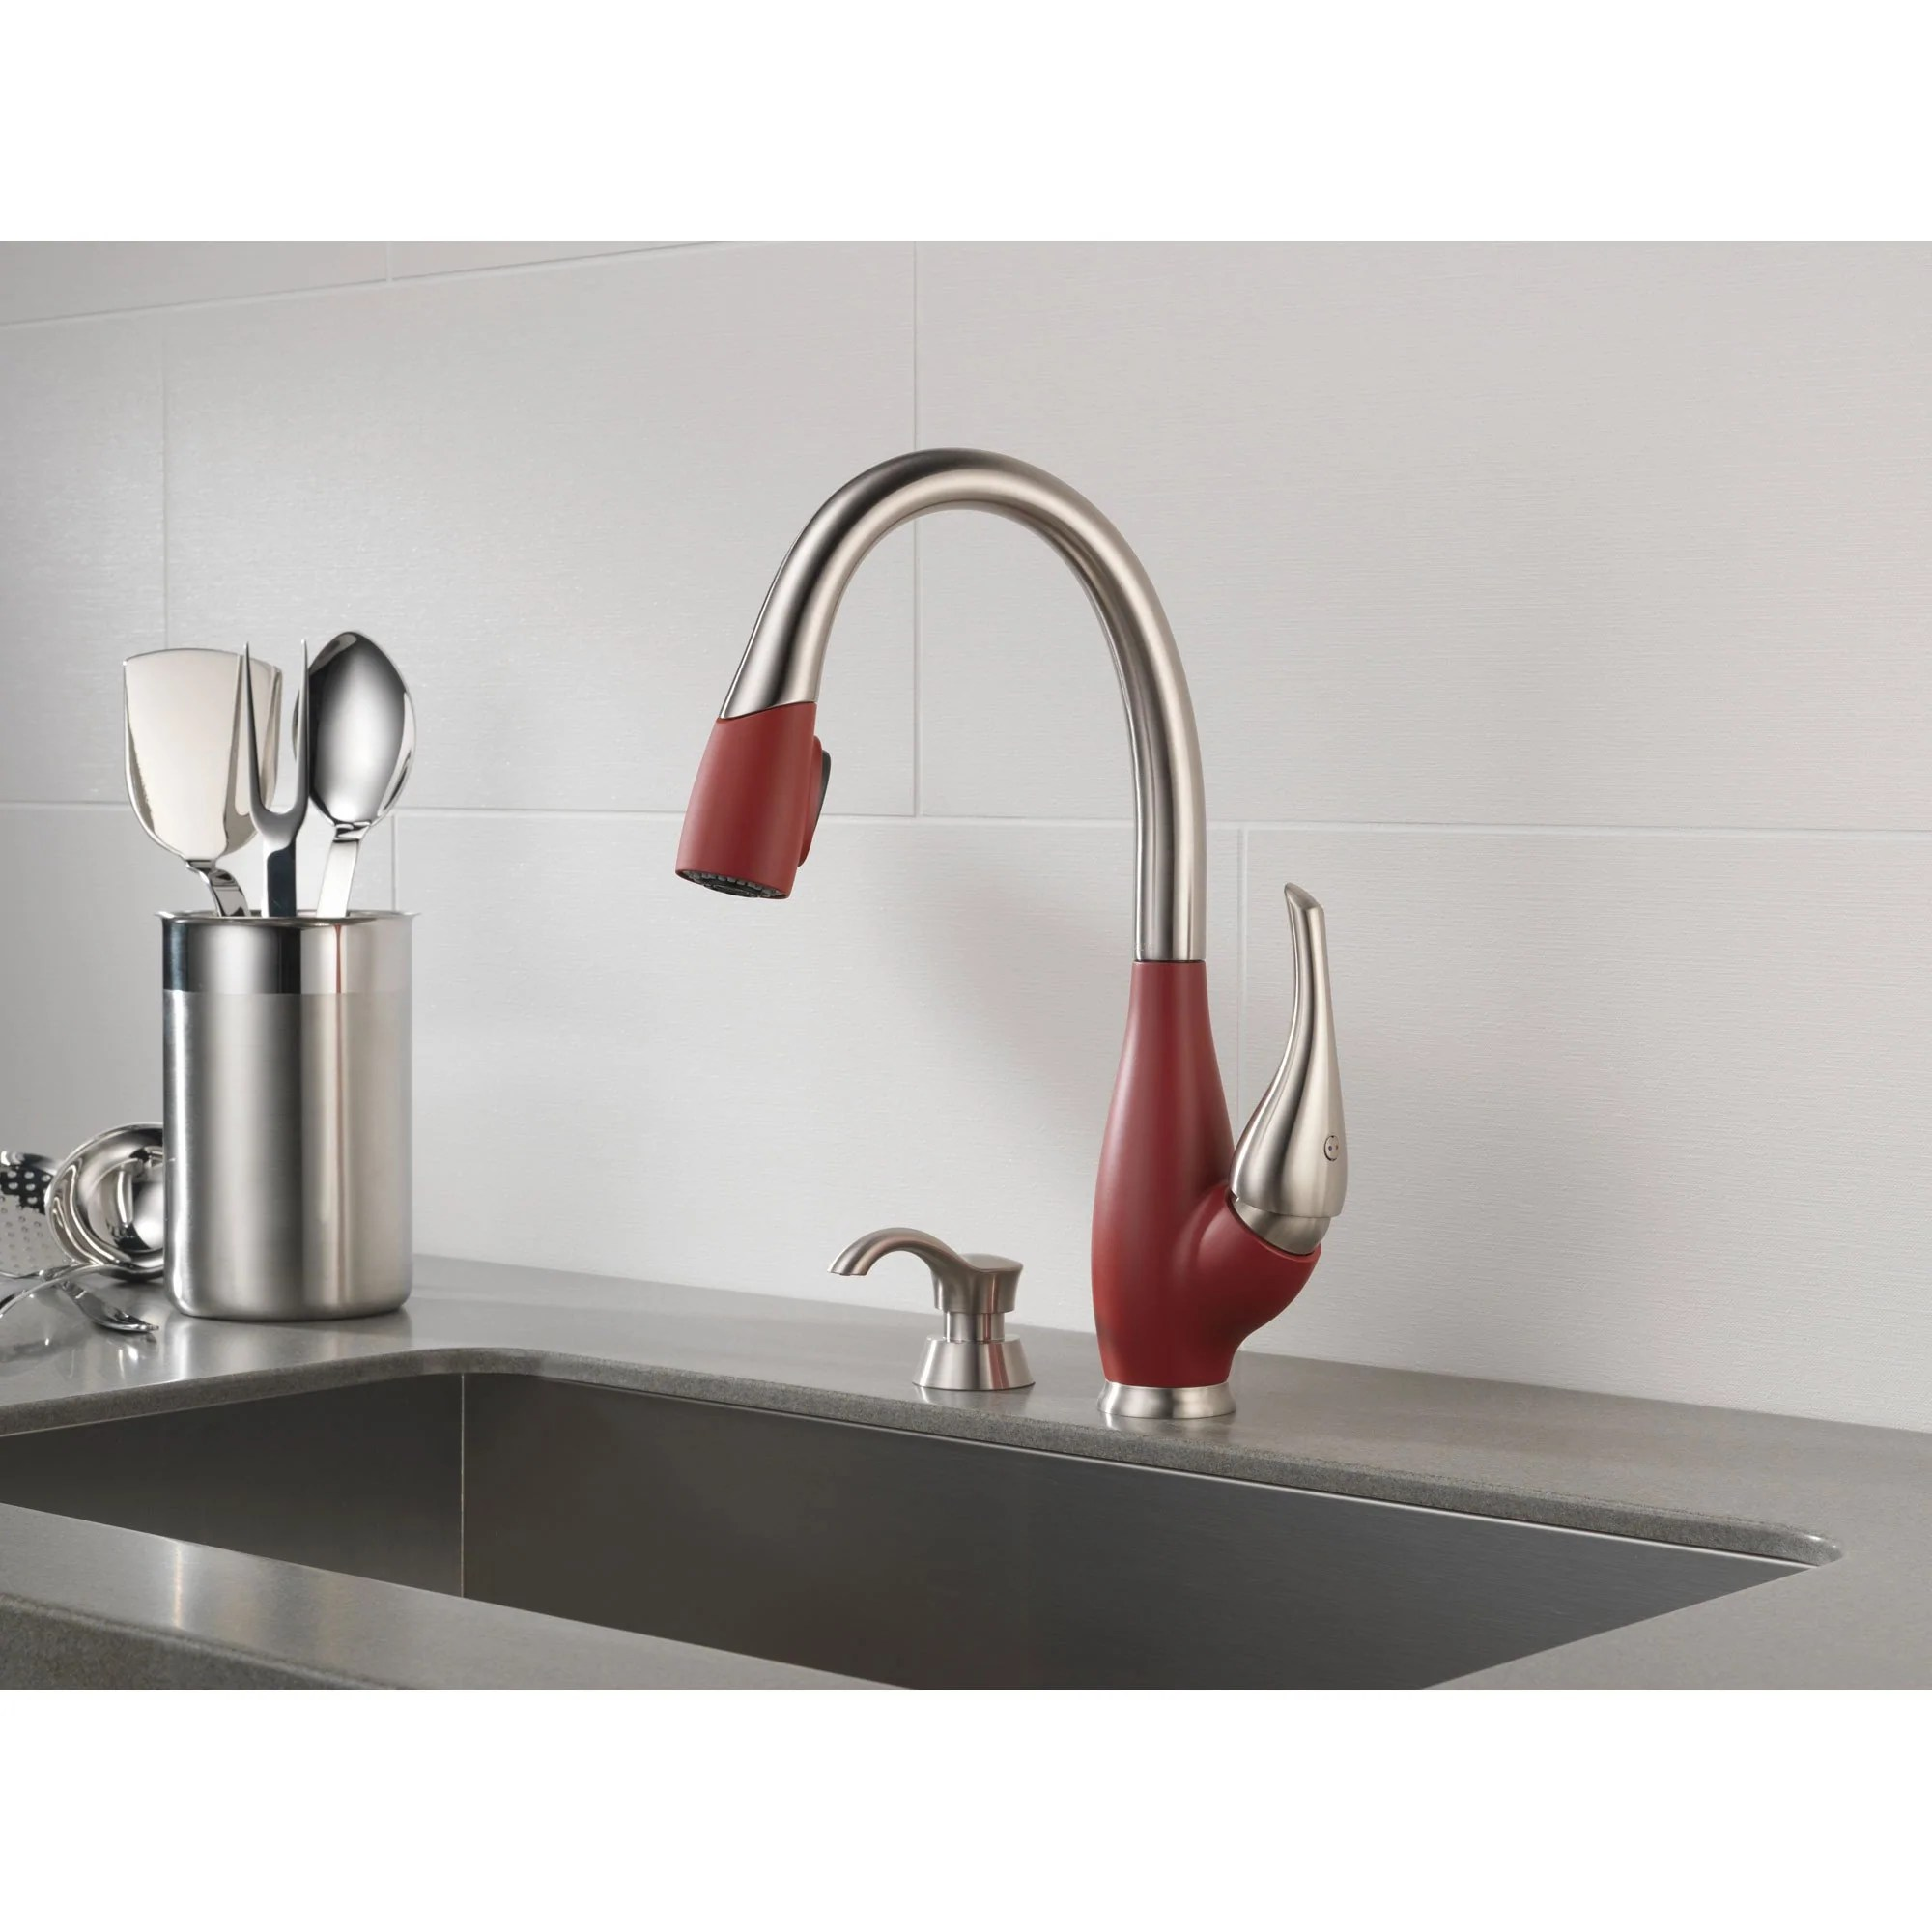 delta fuse collection stainless steel and red finish single handle pull down kitchen sink faucet and deck mounted soap dispenser package d075cr